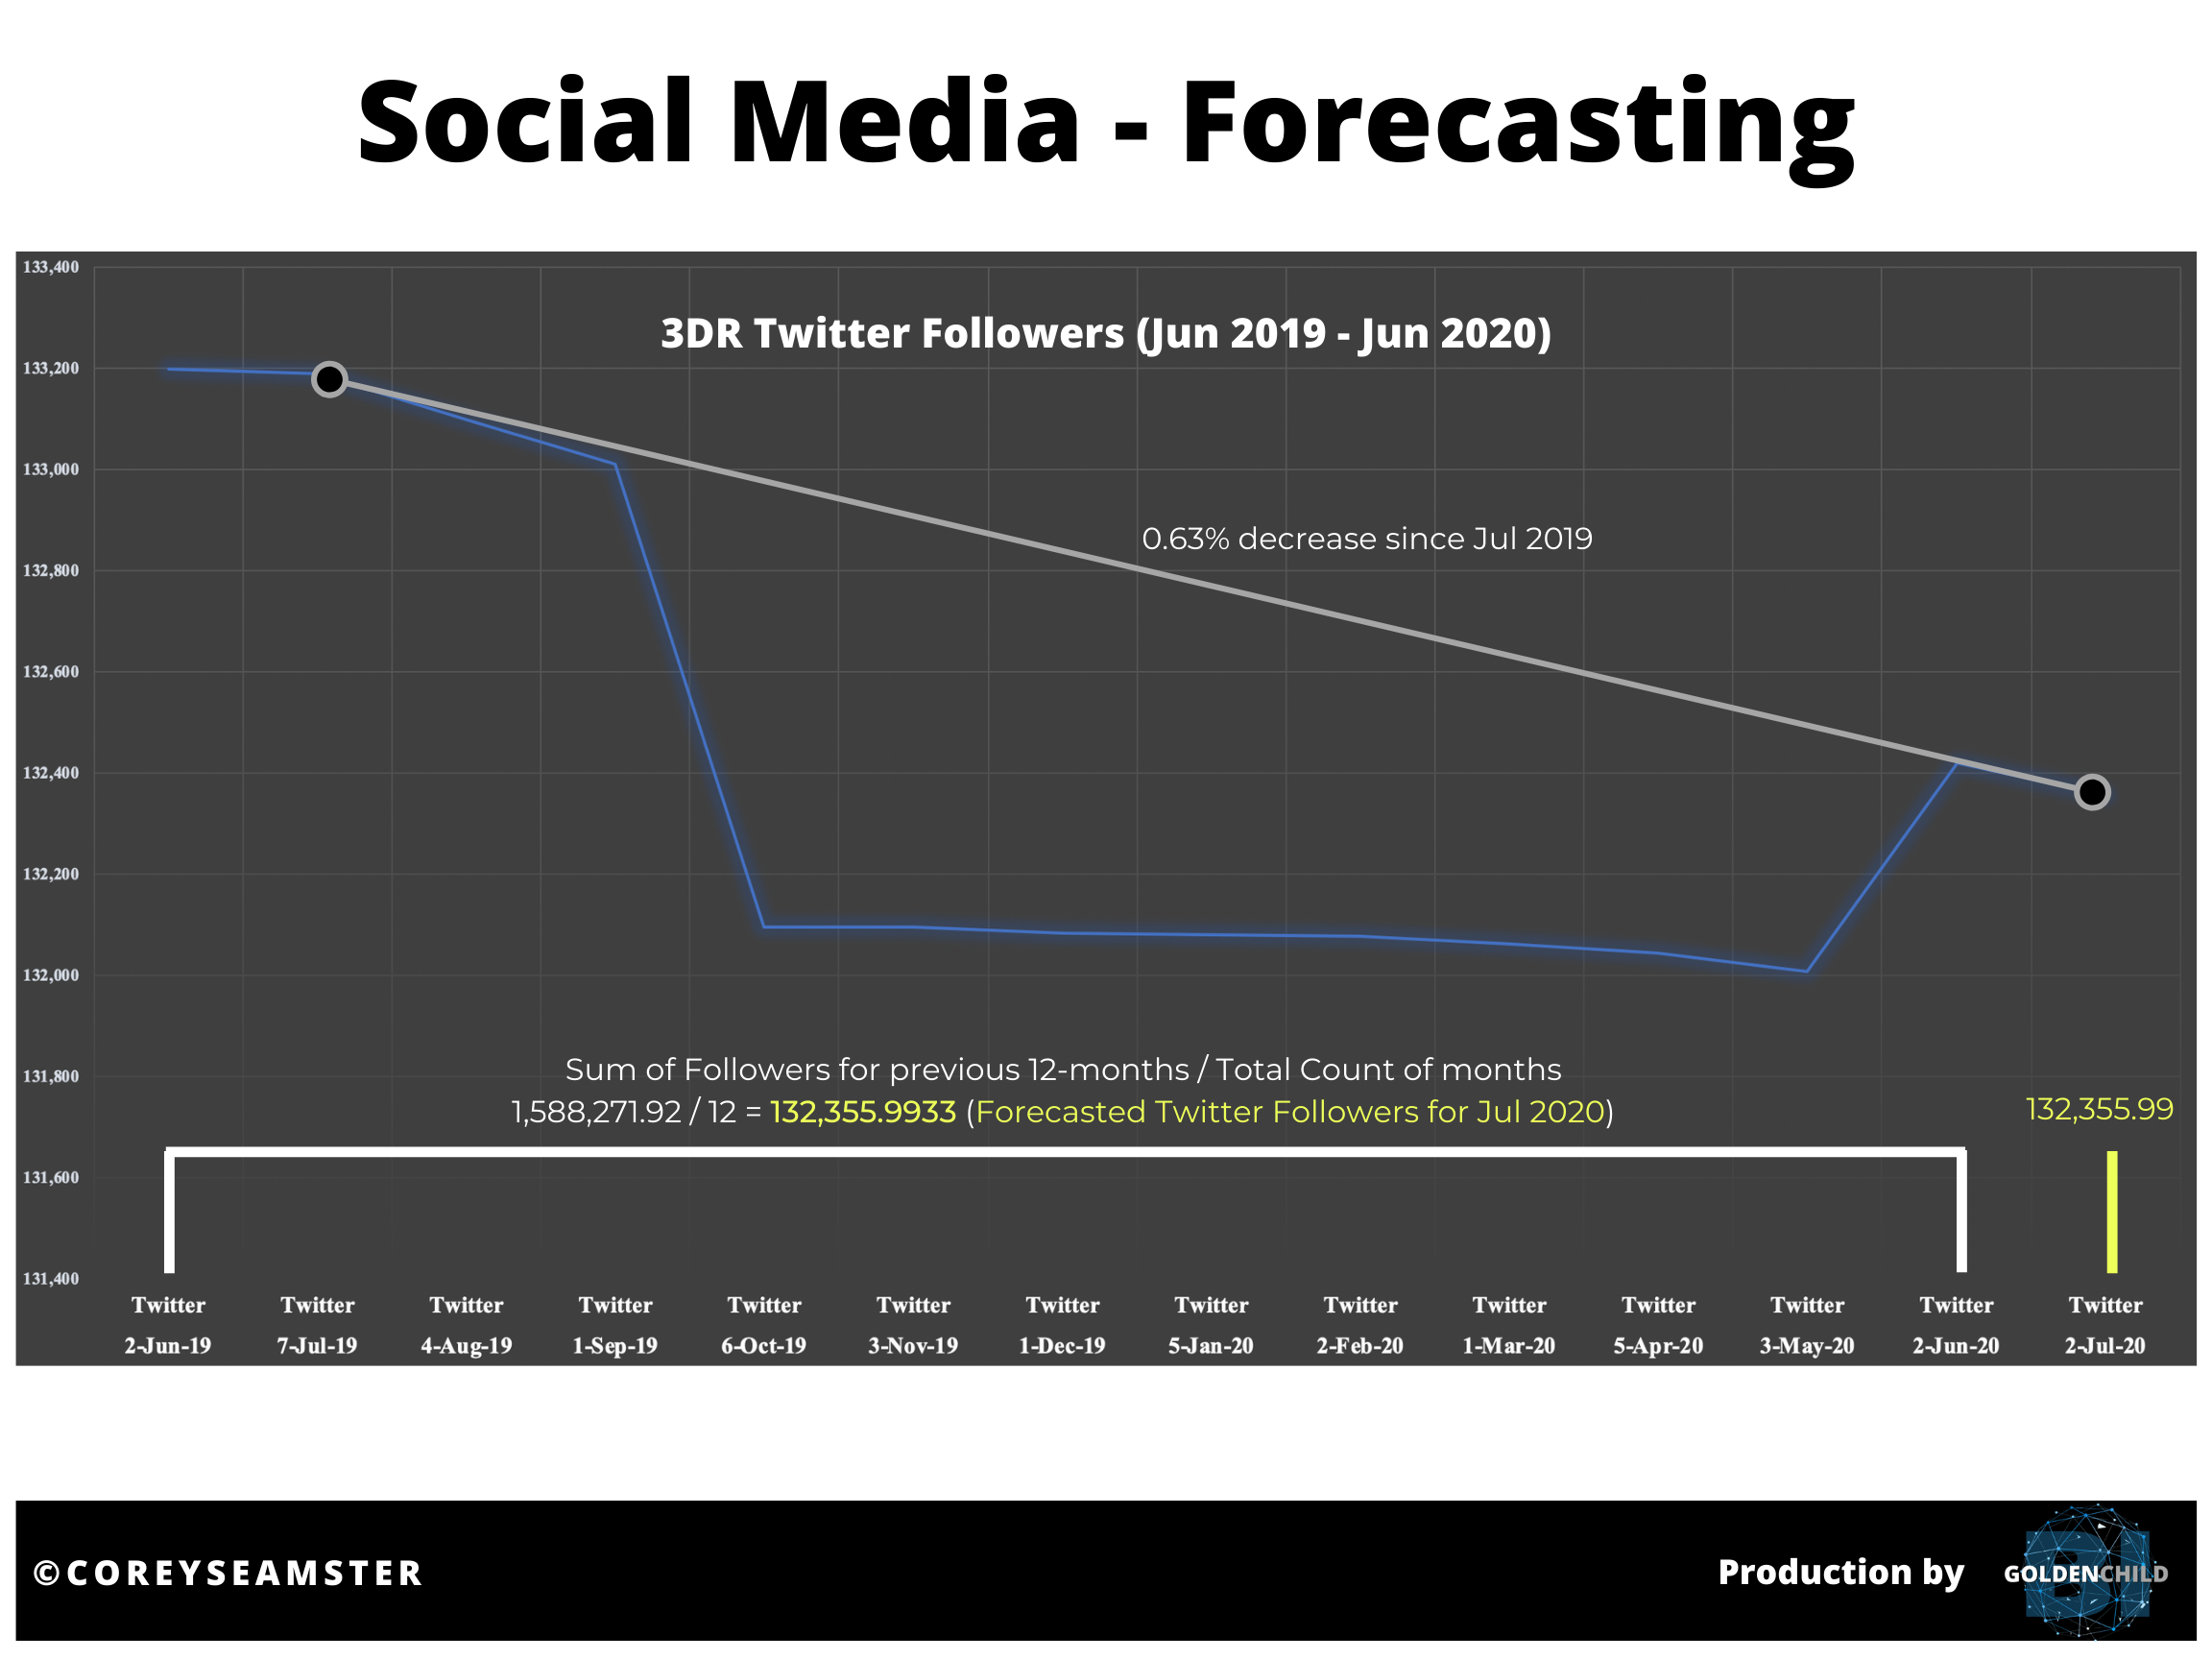 Source: Corey Seamster (2020) | Image: 3DR Time-Series Data for Twitter Followers (Craft, 2020)